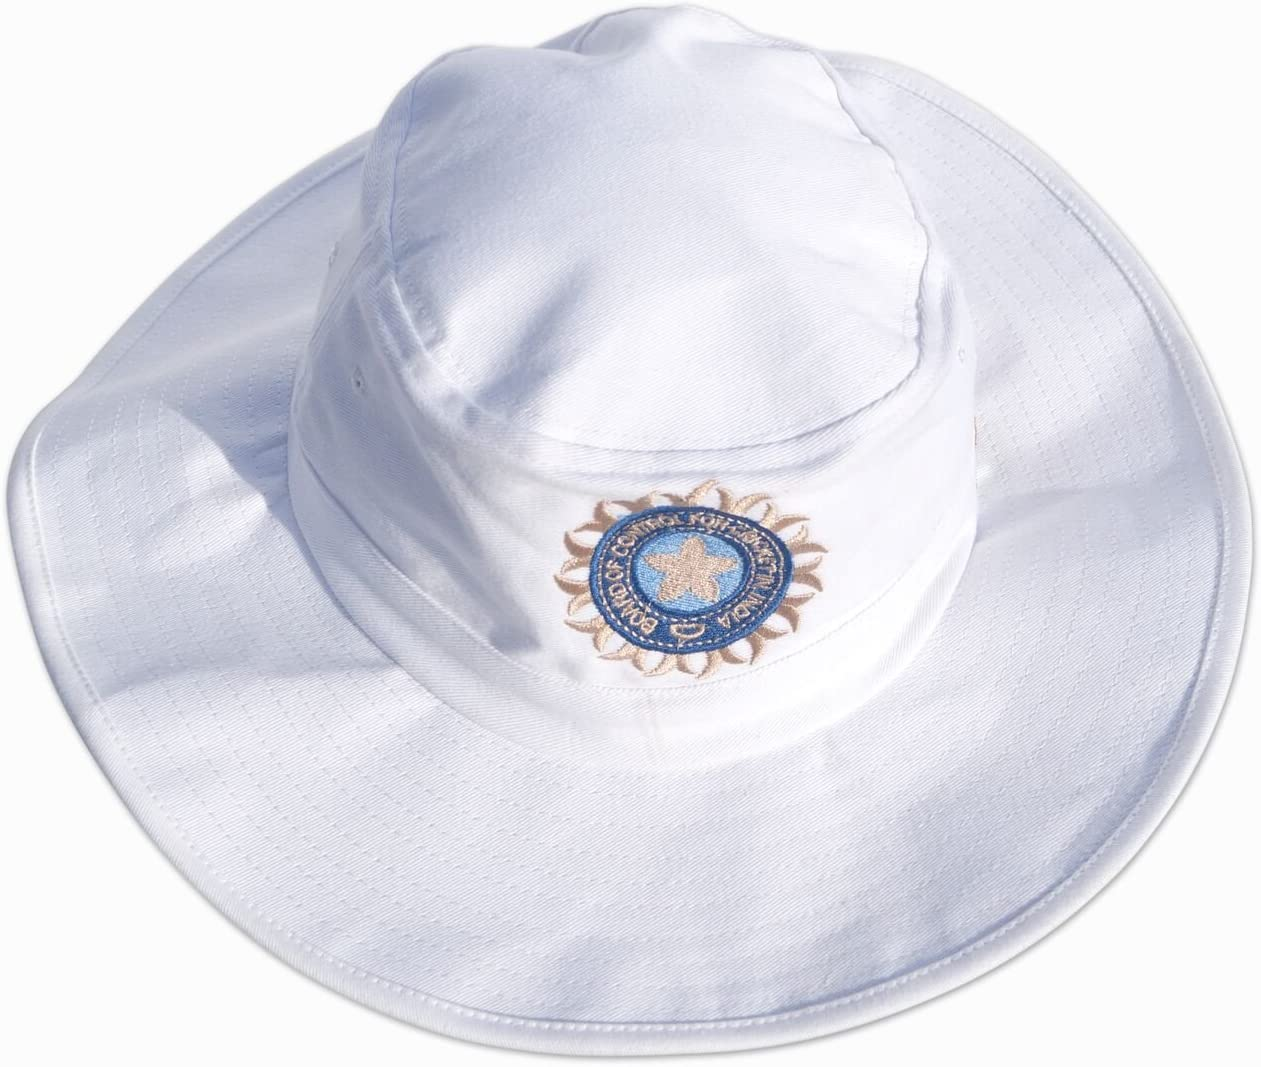 CRICKET SUNHAT WITH INDIA LOGO//INDIA FLAG ON SIDE MENS LARGE//XL 59-60CM